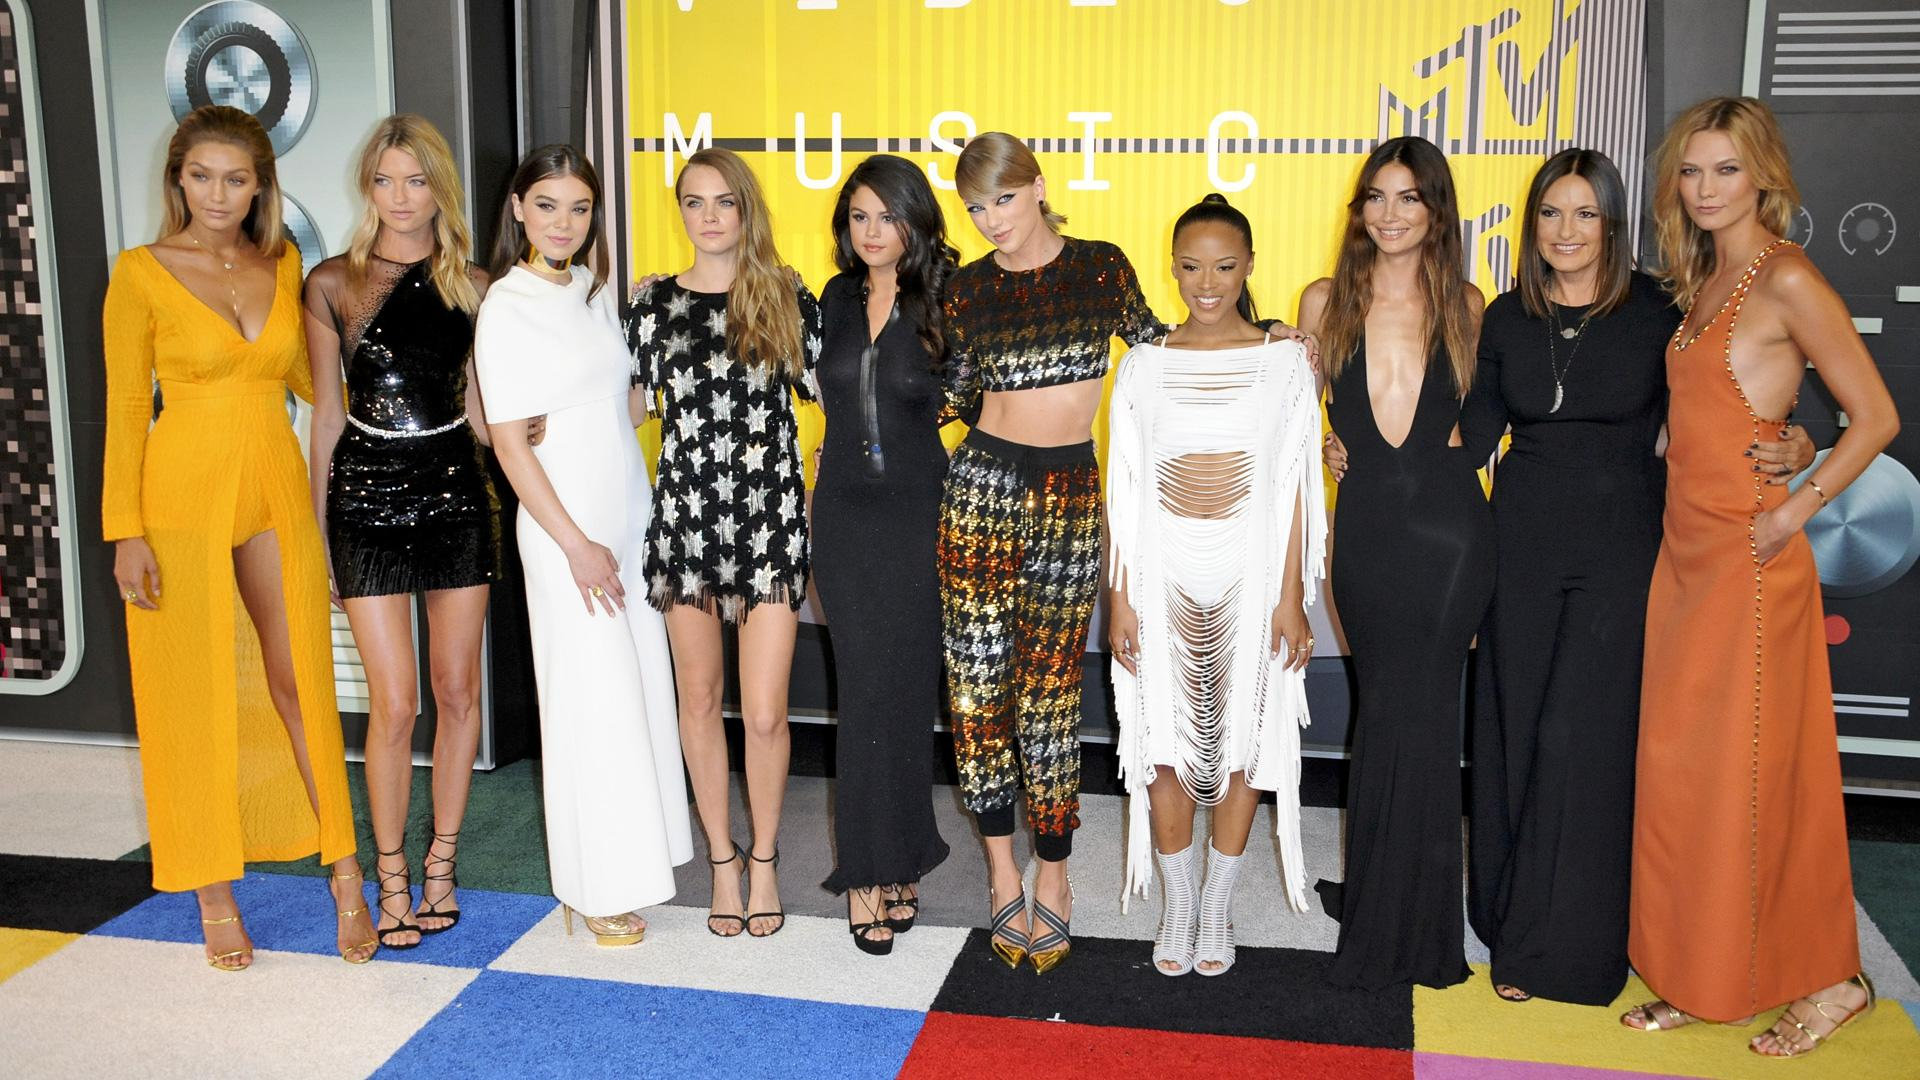 VMAs Red Carpet: Outrageous Antics, Donald Trump and Songs of the Summer